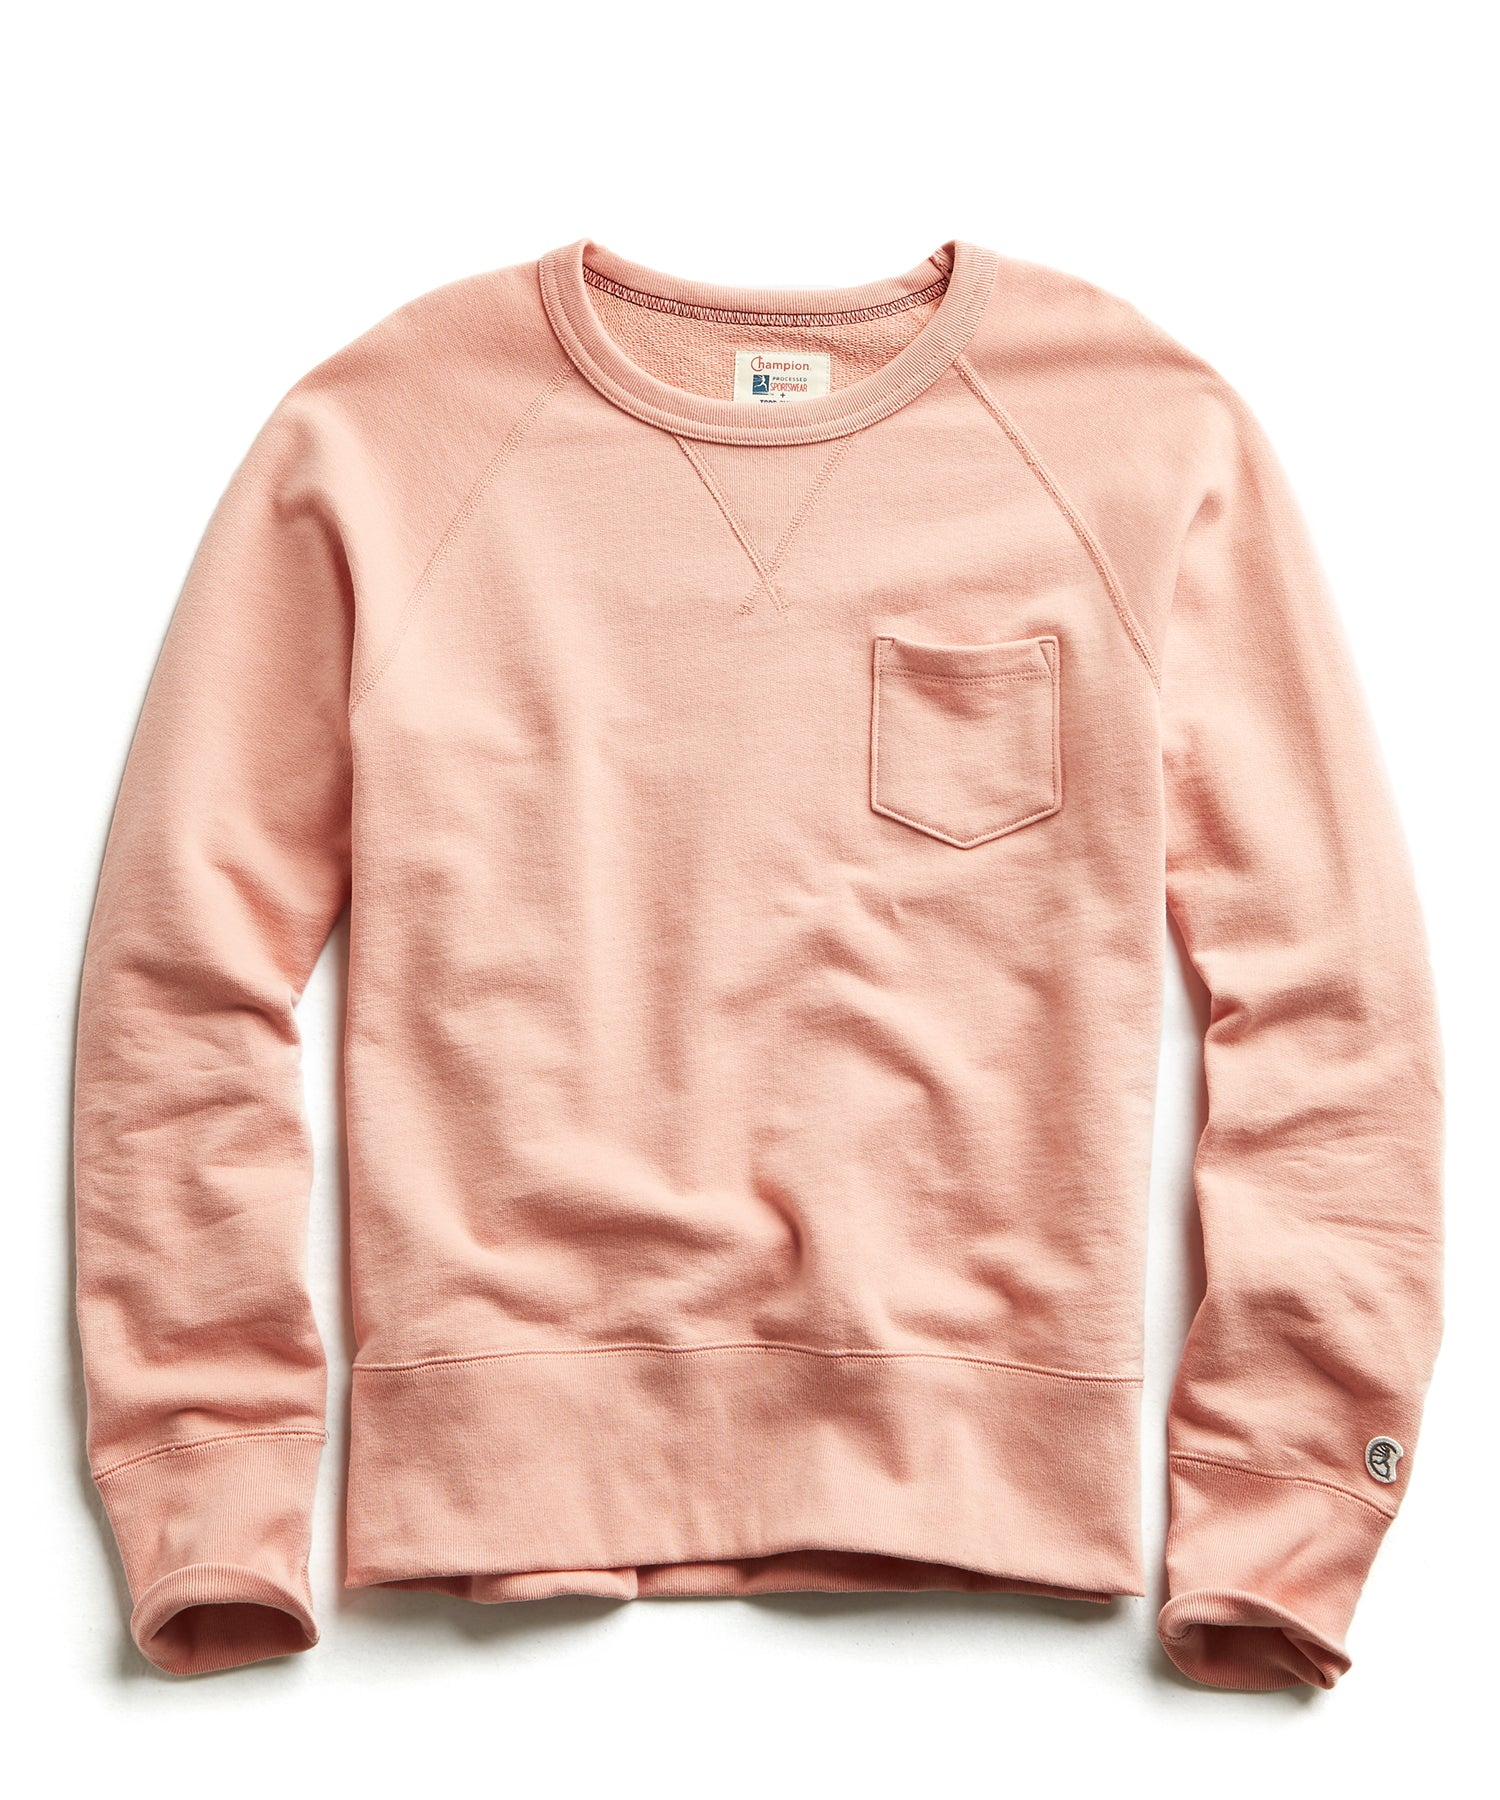 Terry Pocket Sweatshirt in Pale Salmon